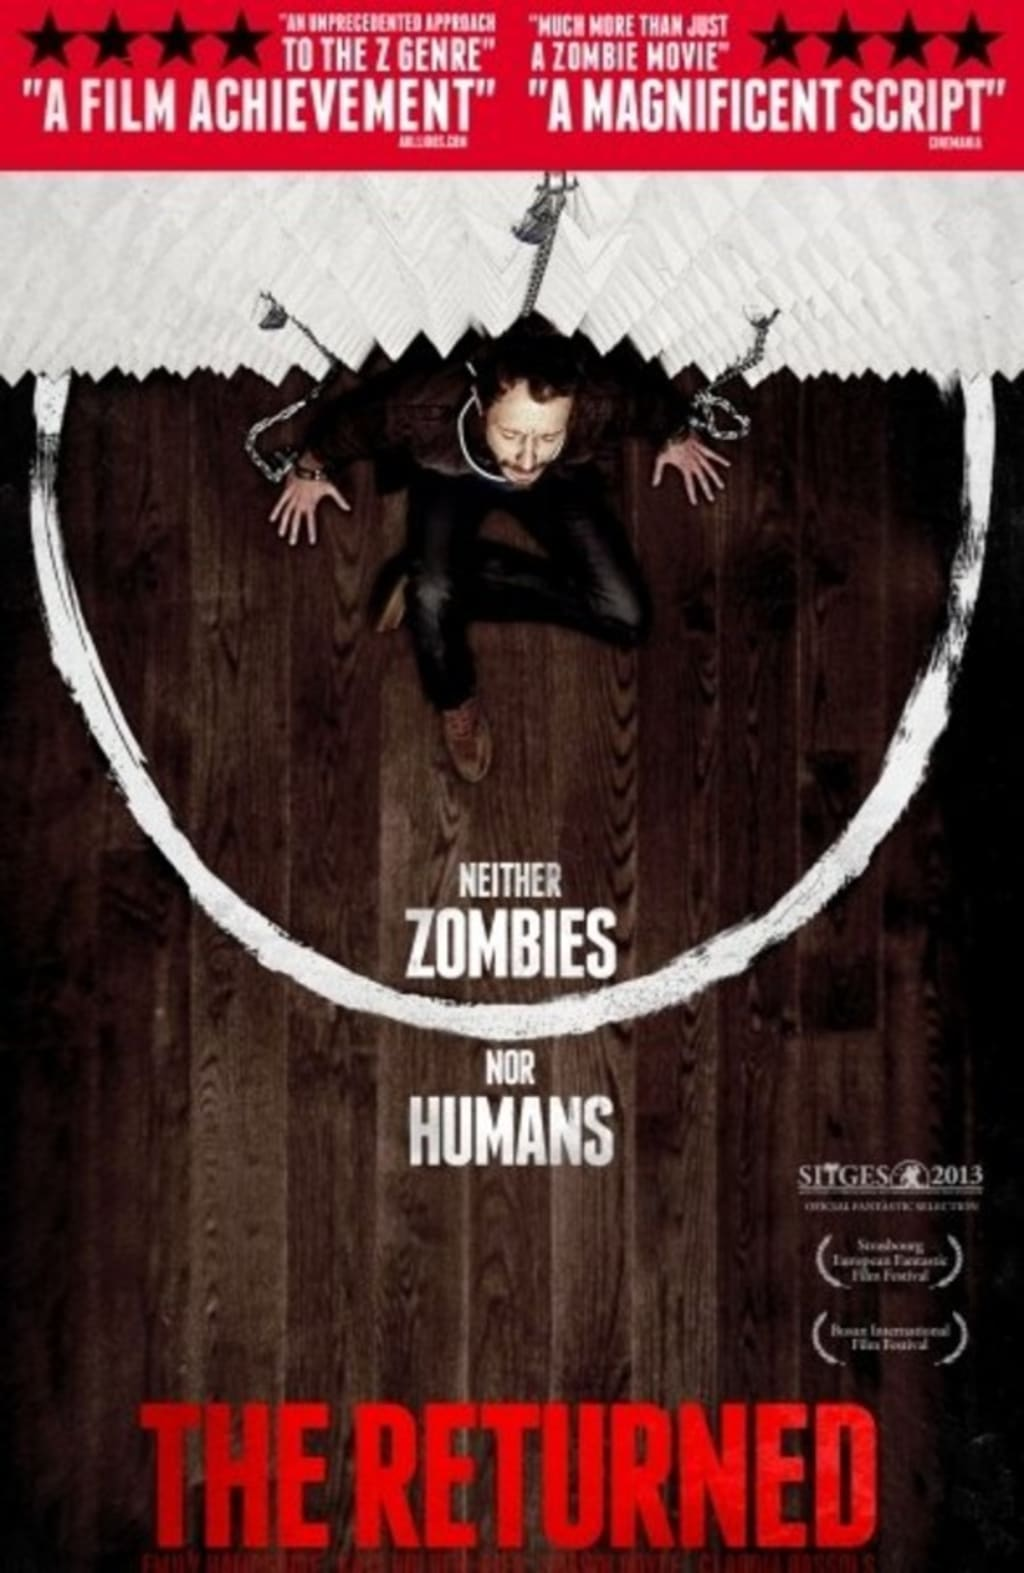 Reed Alexander's Horror Review of 'The Returned' (2013)